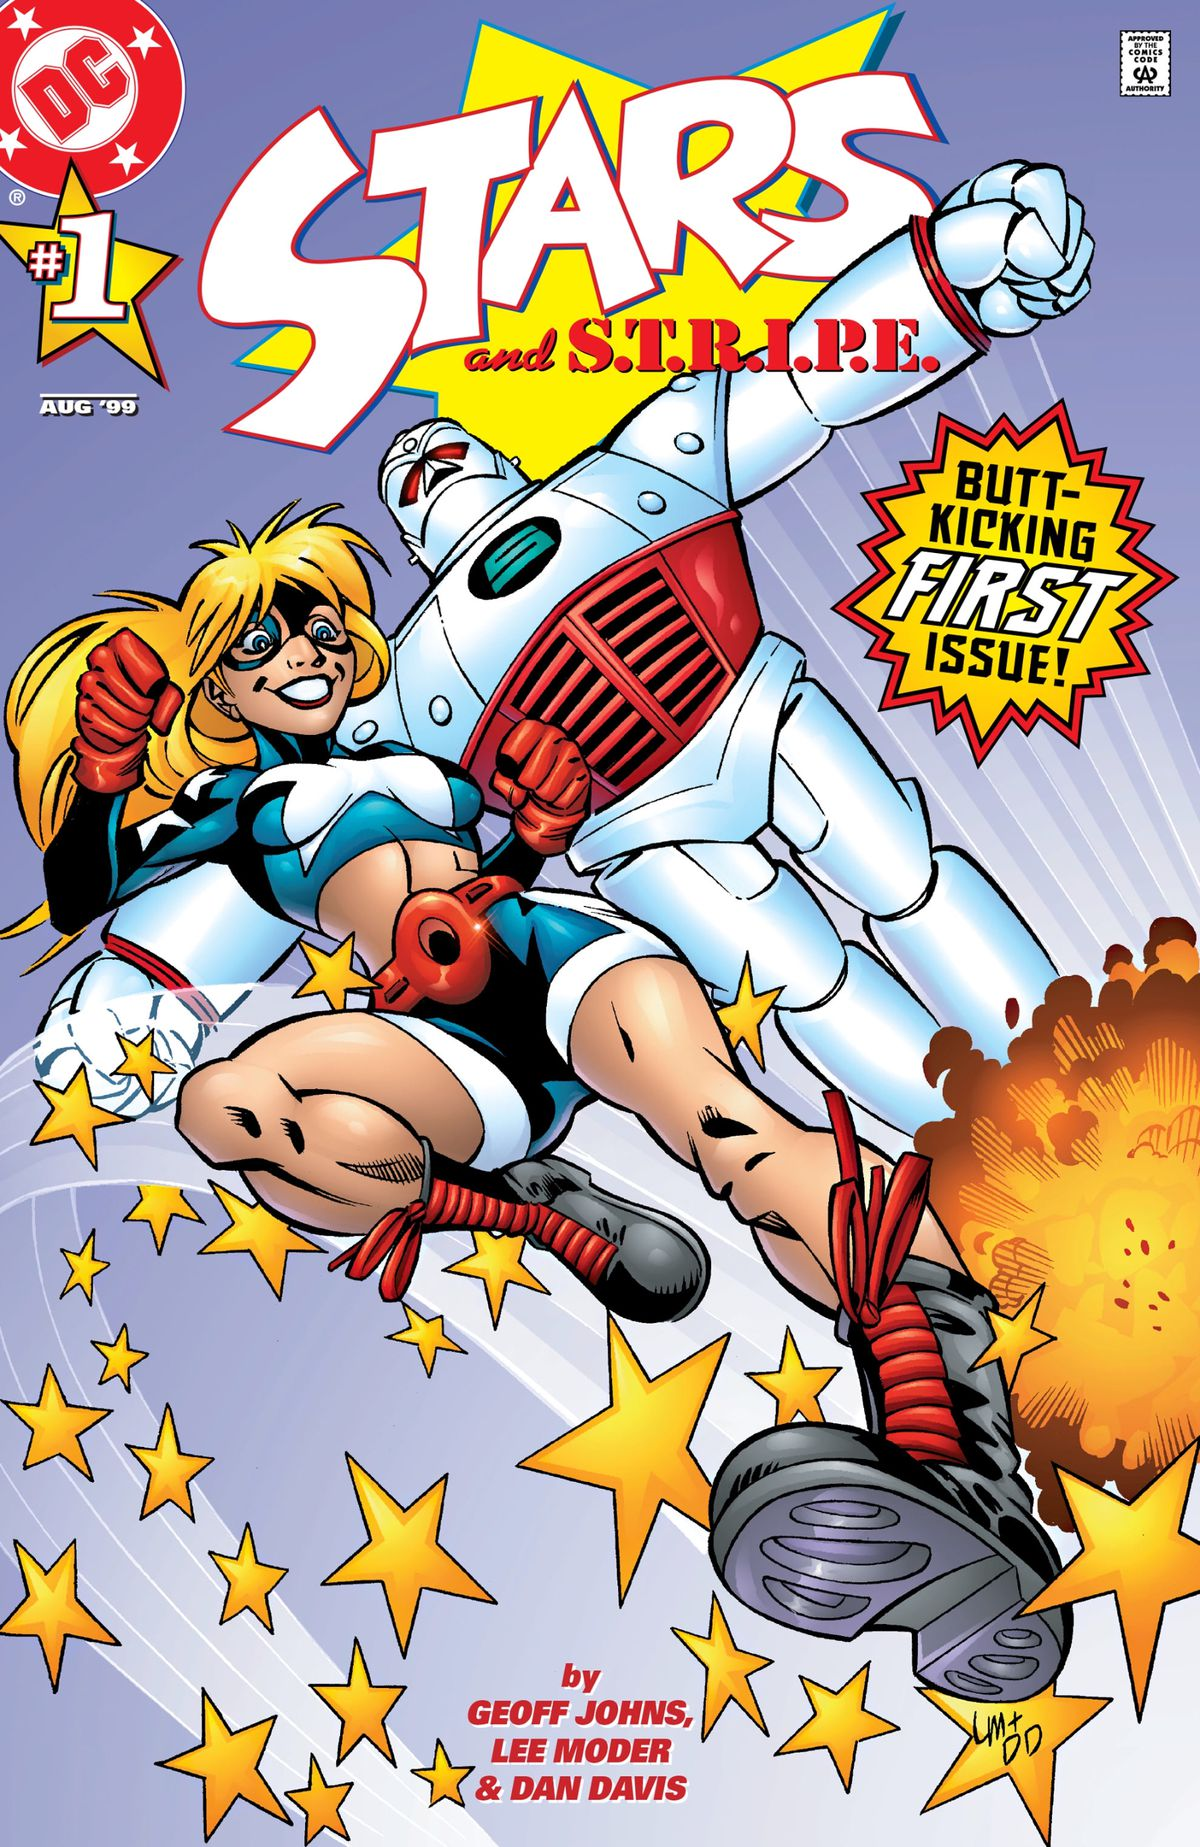 Courtney Whitmore/Stargirl and Pat Dugan in his STRIPE exosuit spring across the page on the cover of Stars and STRIPE #1, DC Comics (1999).